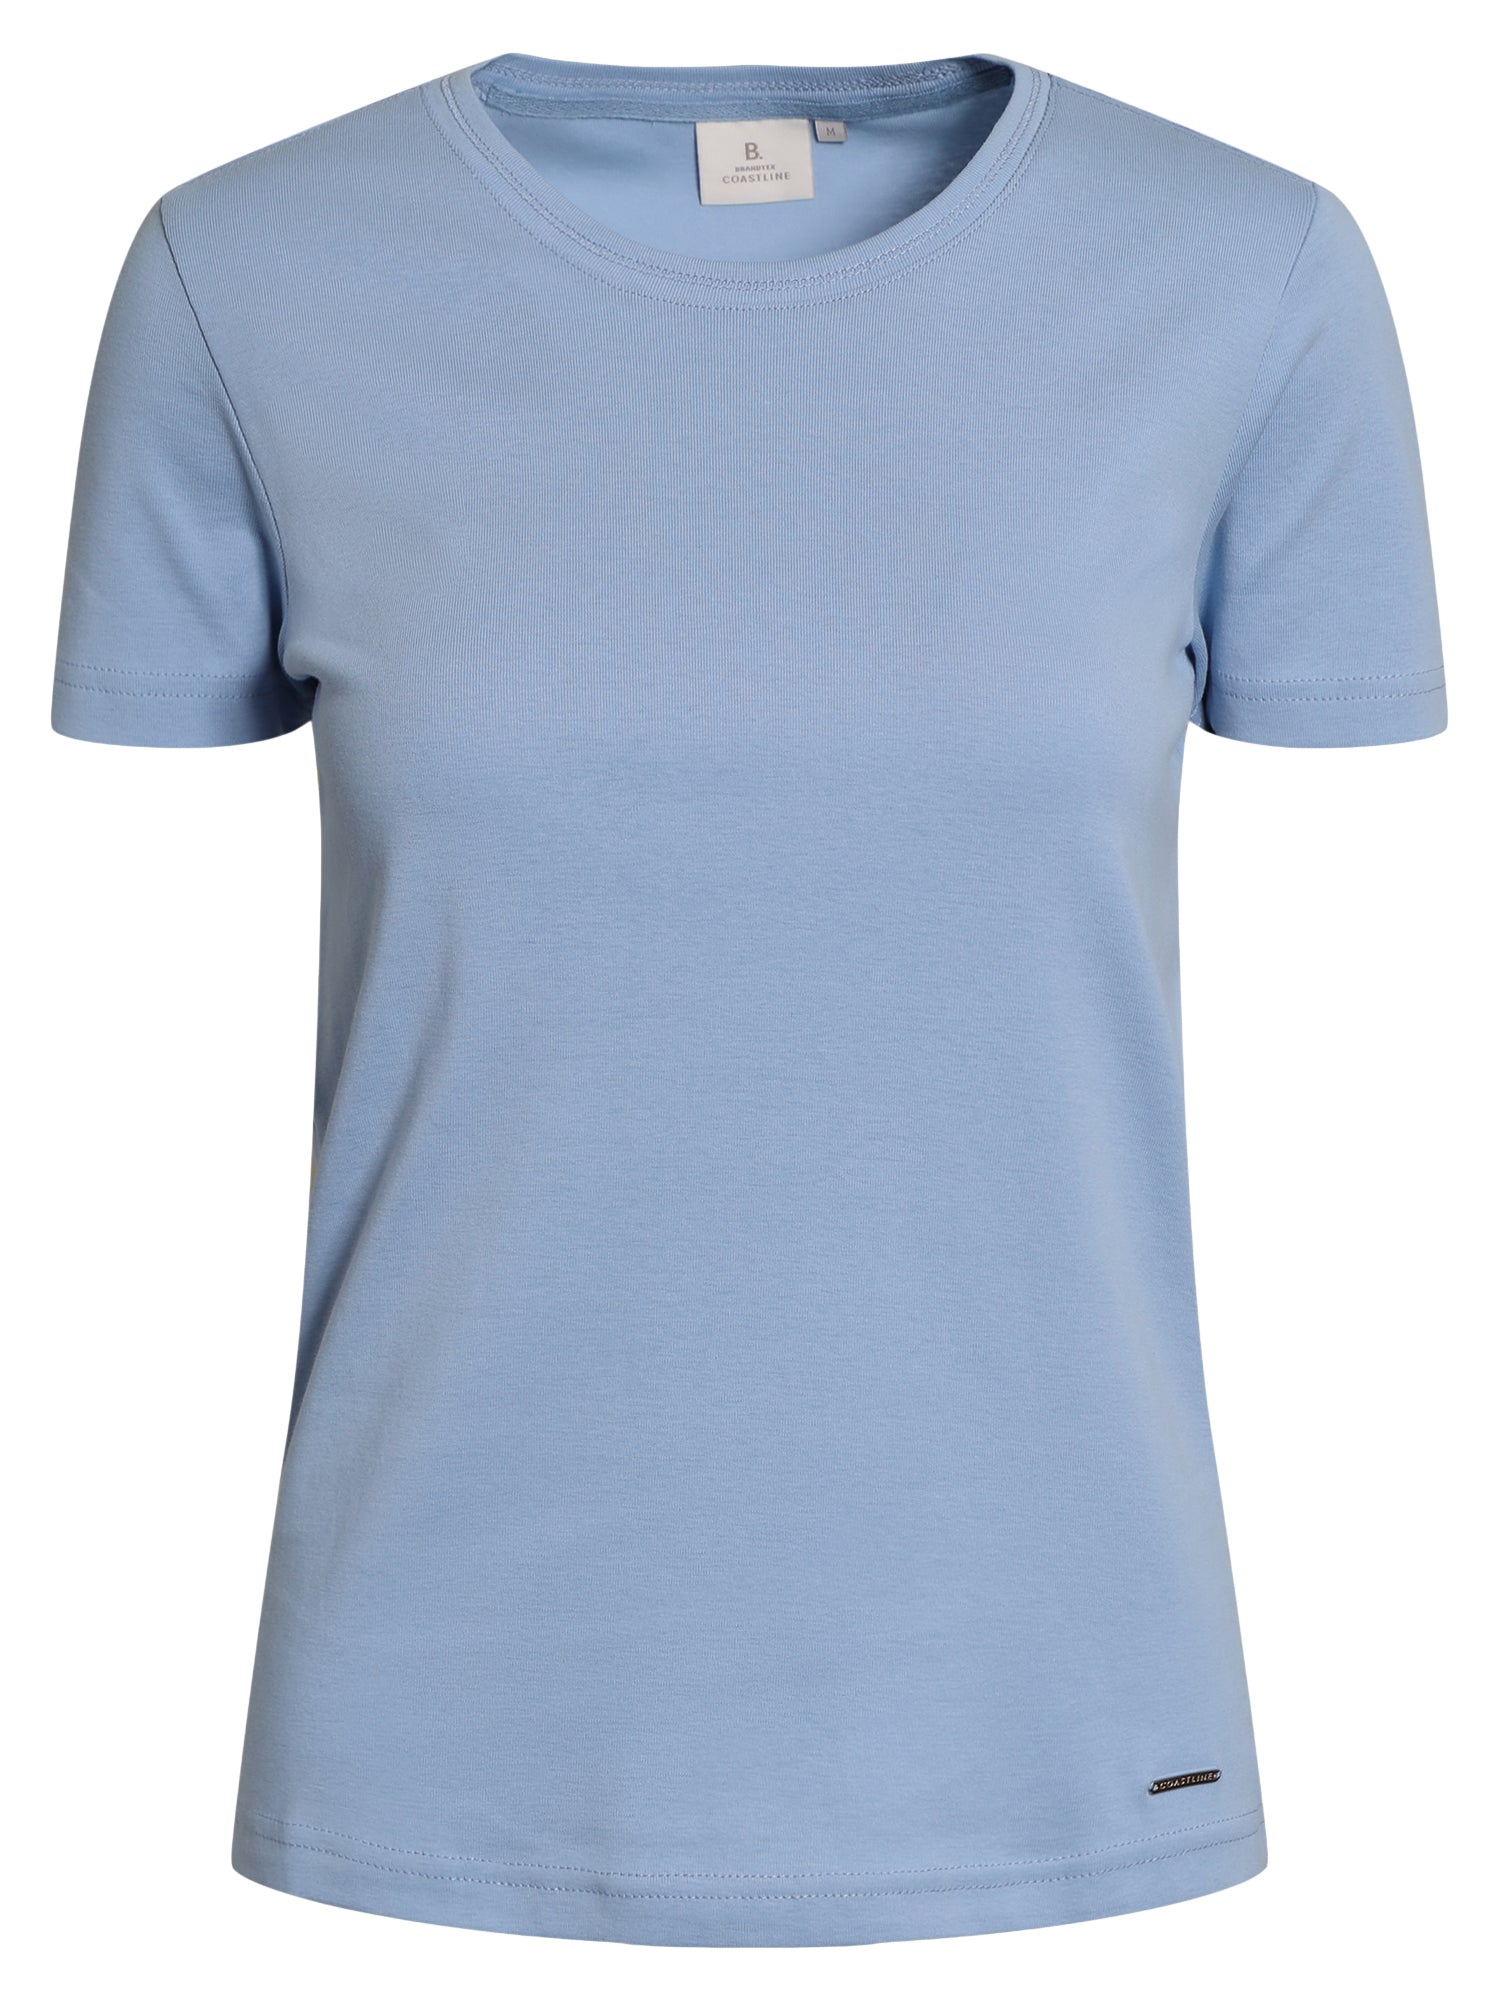 Image of   T-shirt med korte ærmer - Blue heaven